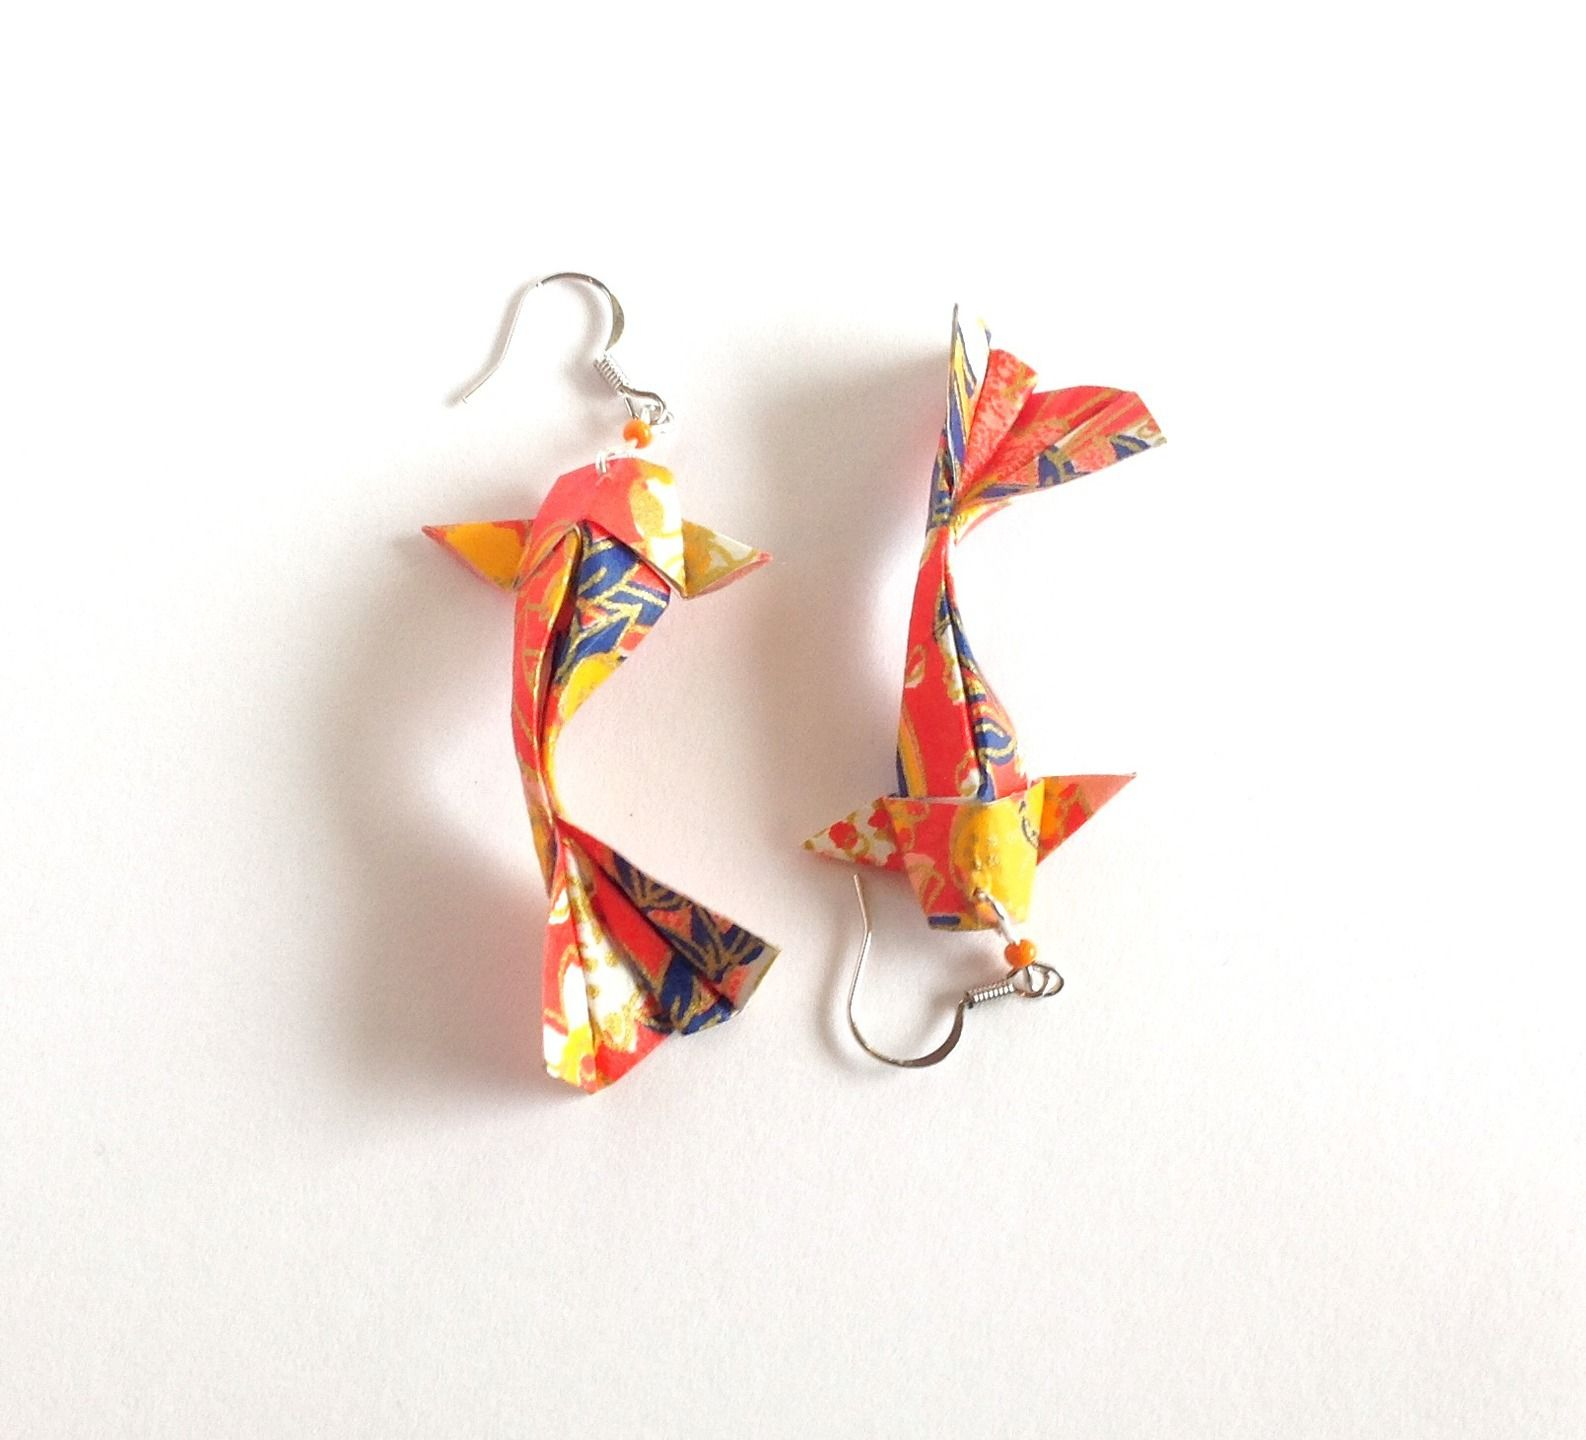 boucles d 39 oreille mariage perles rouge en verre earrings boucle d 39 oreille and origami